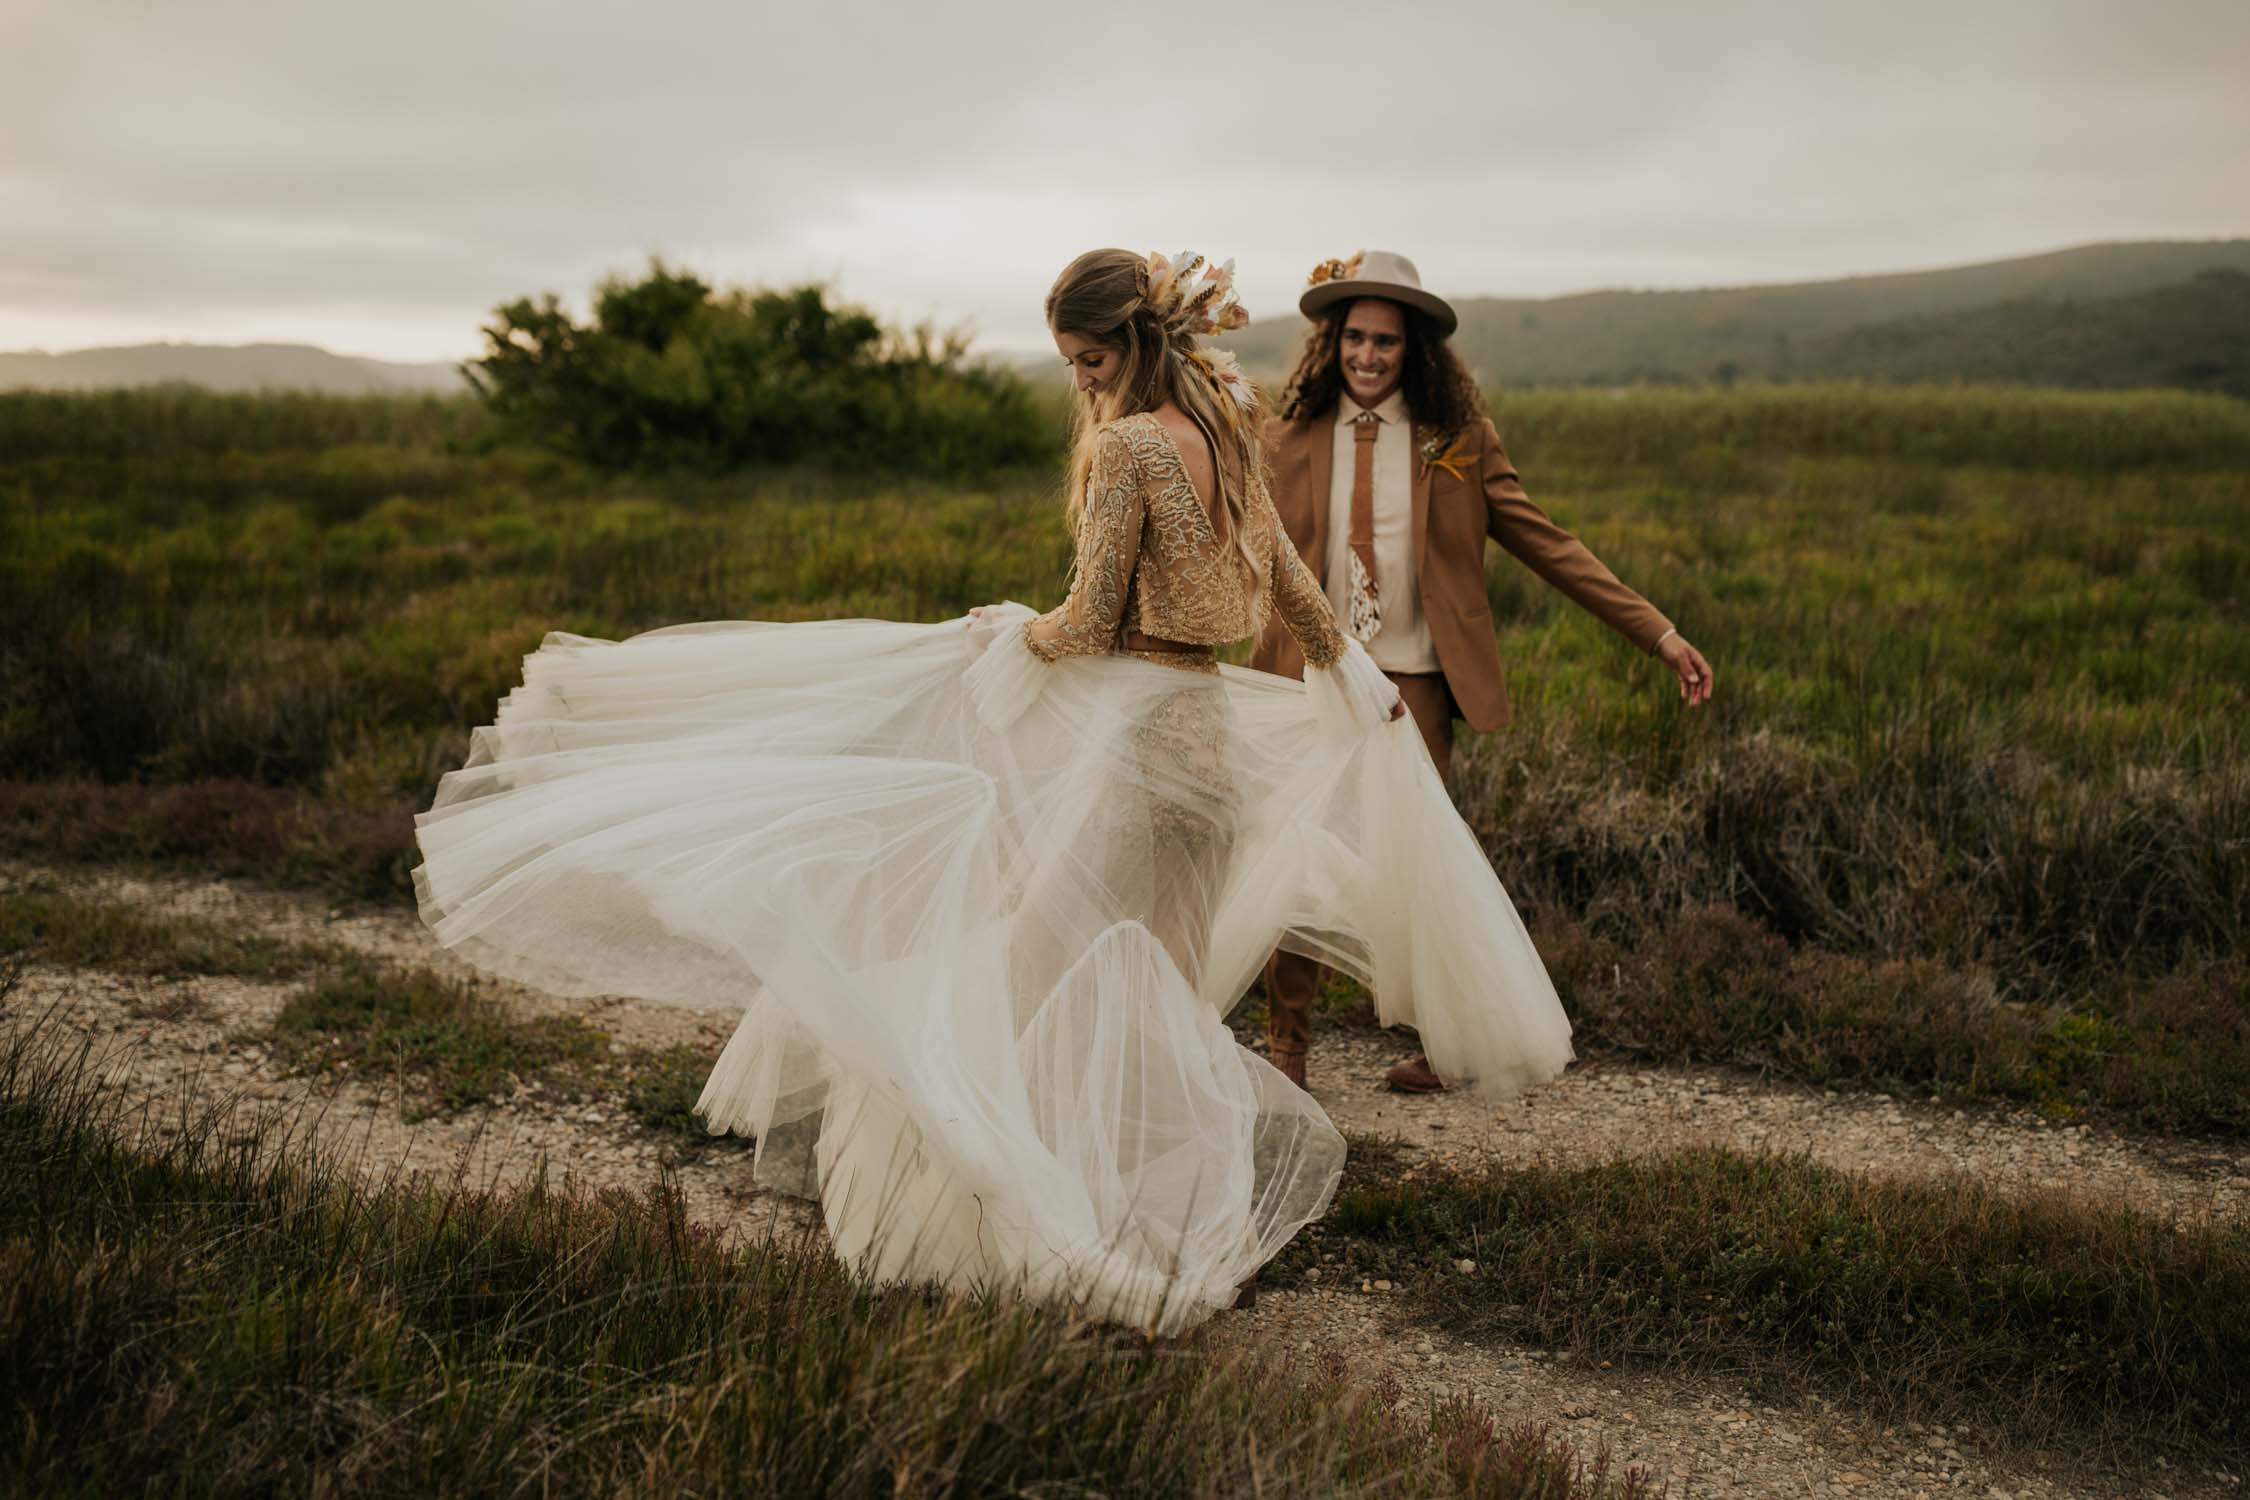 Candid and adventure Vancouver Wedding Photographer takes amazing romantic photo of boho bride and groom spinning at destination wedding in South Africa